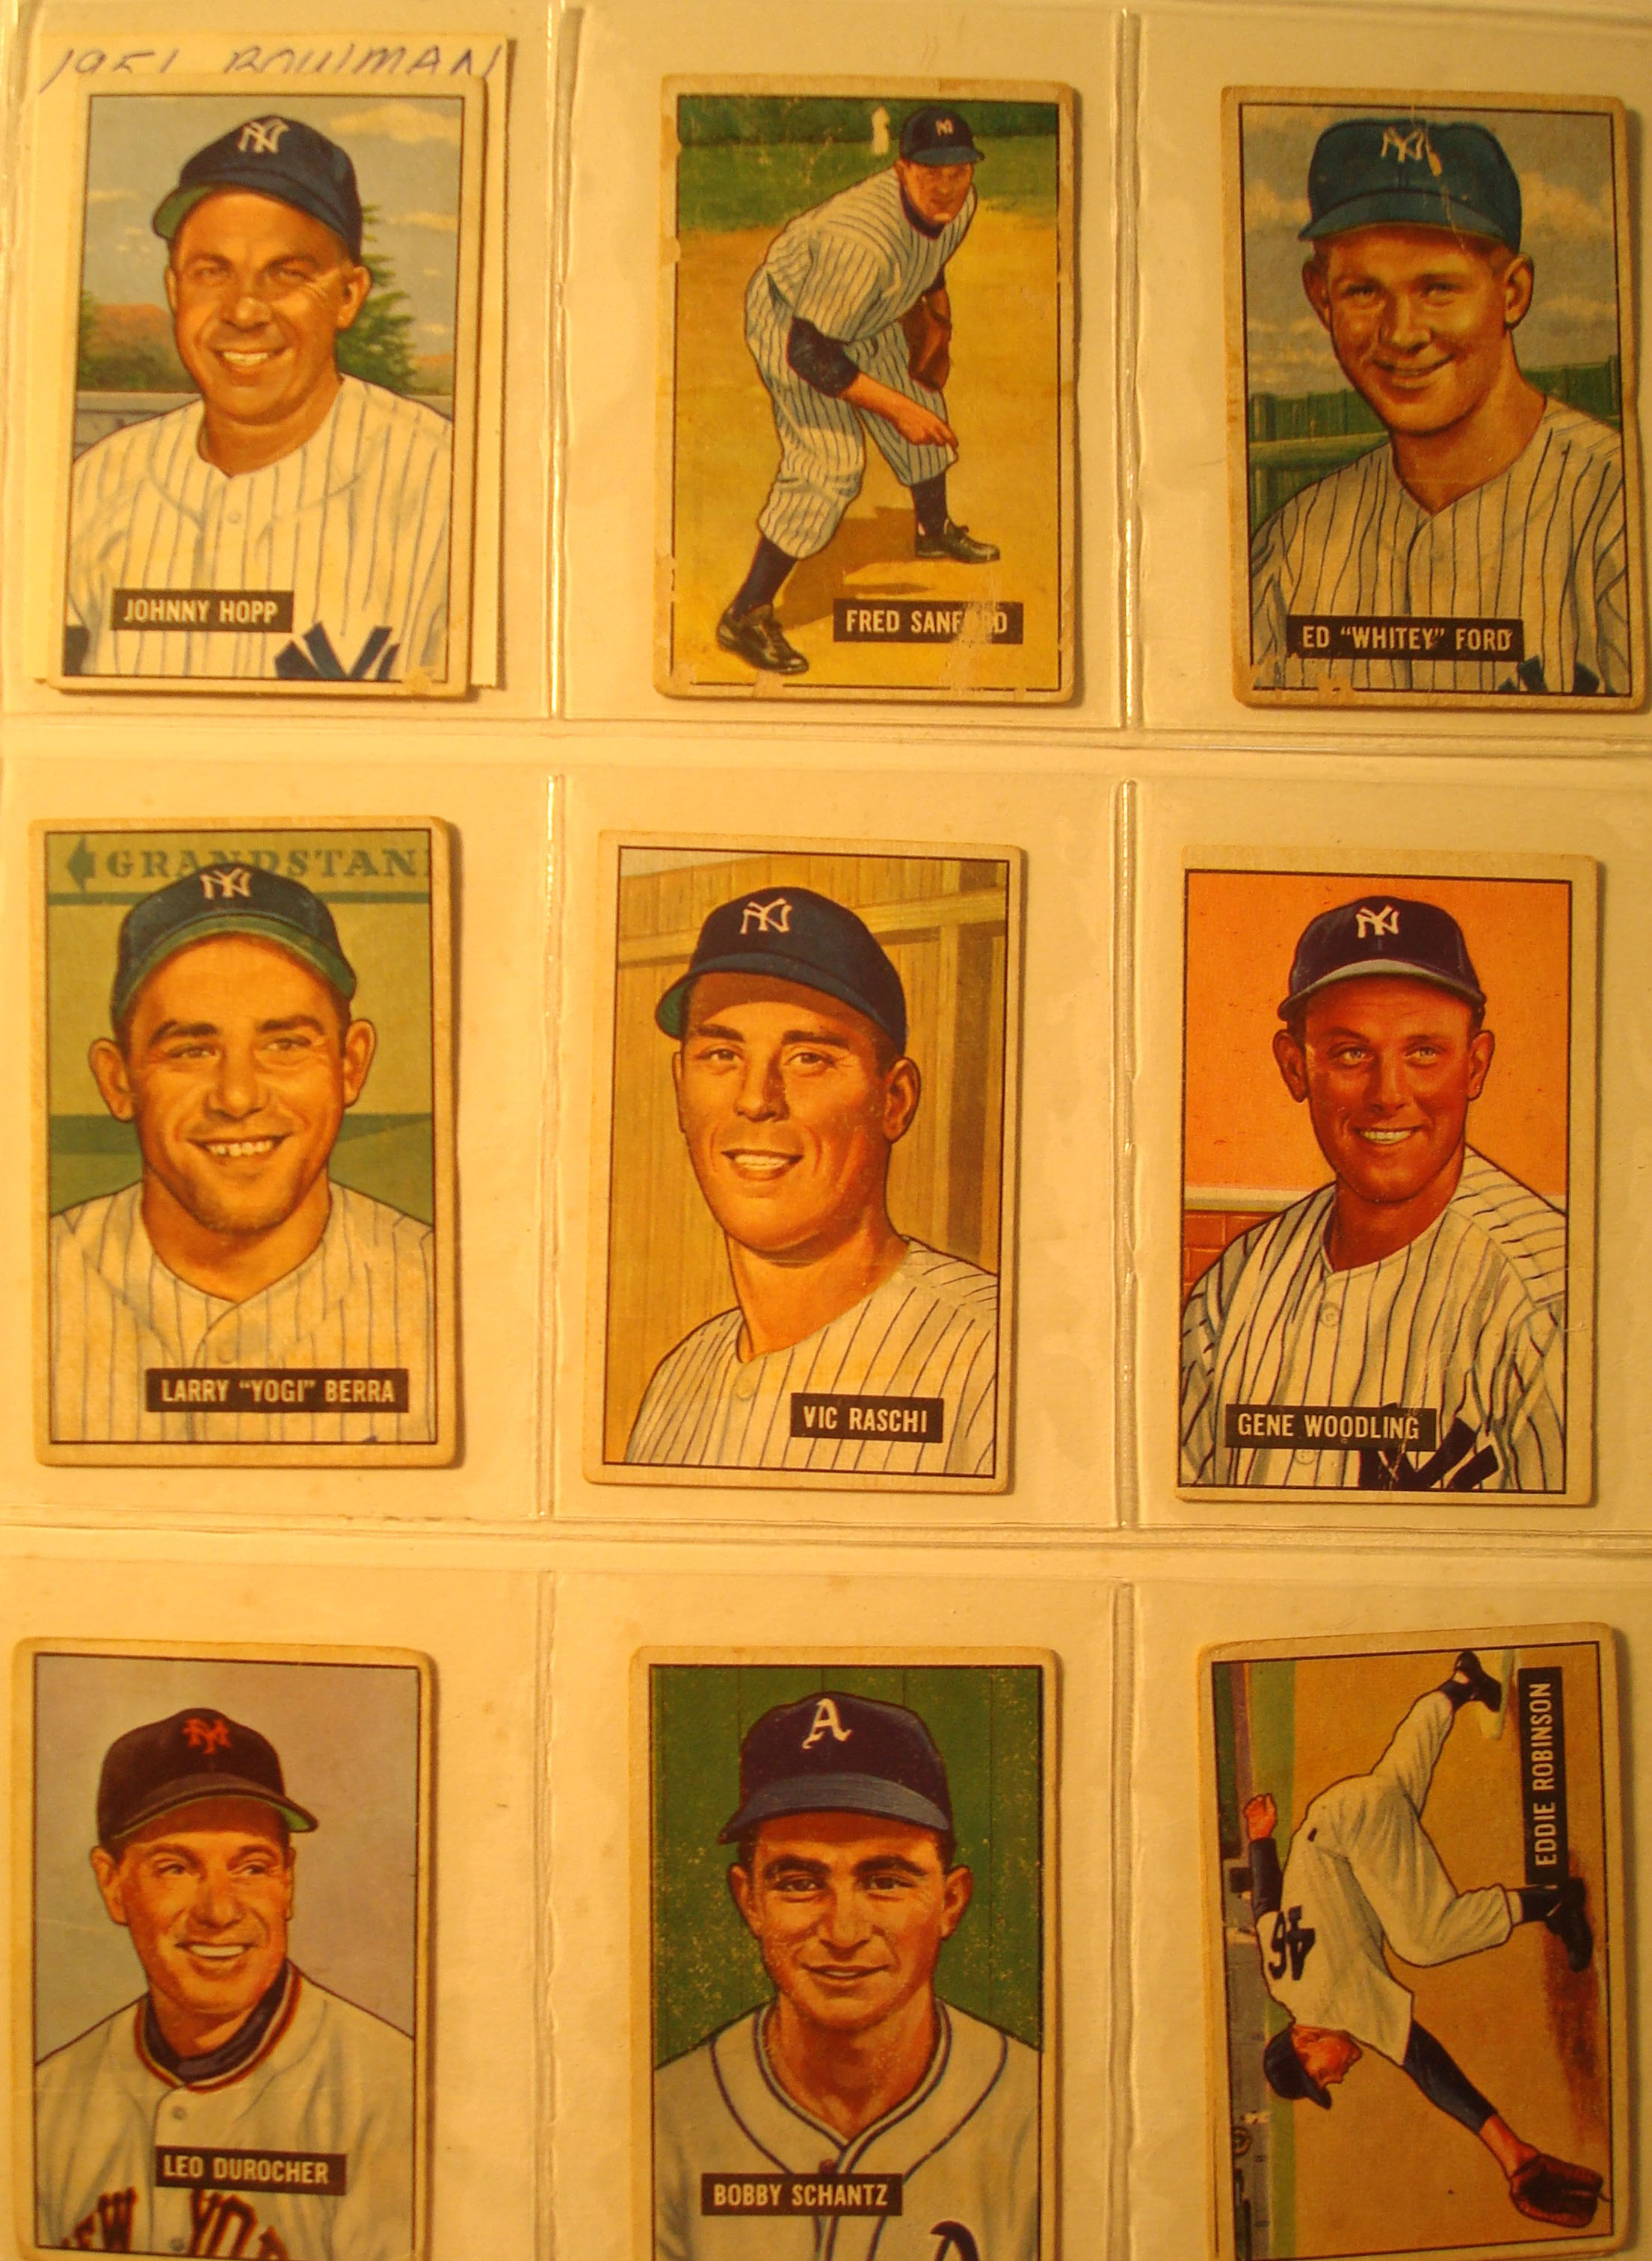 Bone Daddys New York Yankees Baseball Card Collection 1951 ImaSportsphile